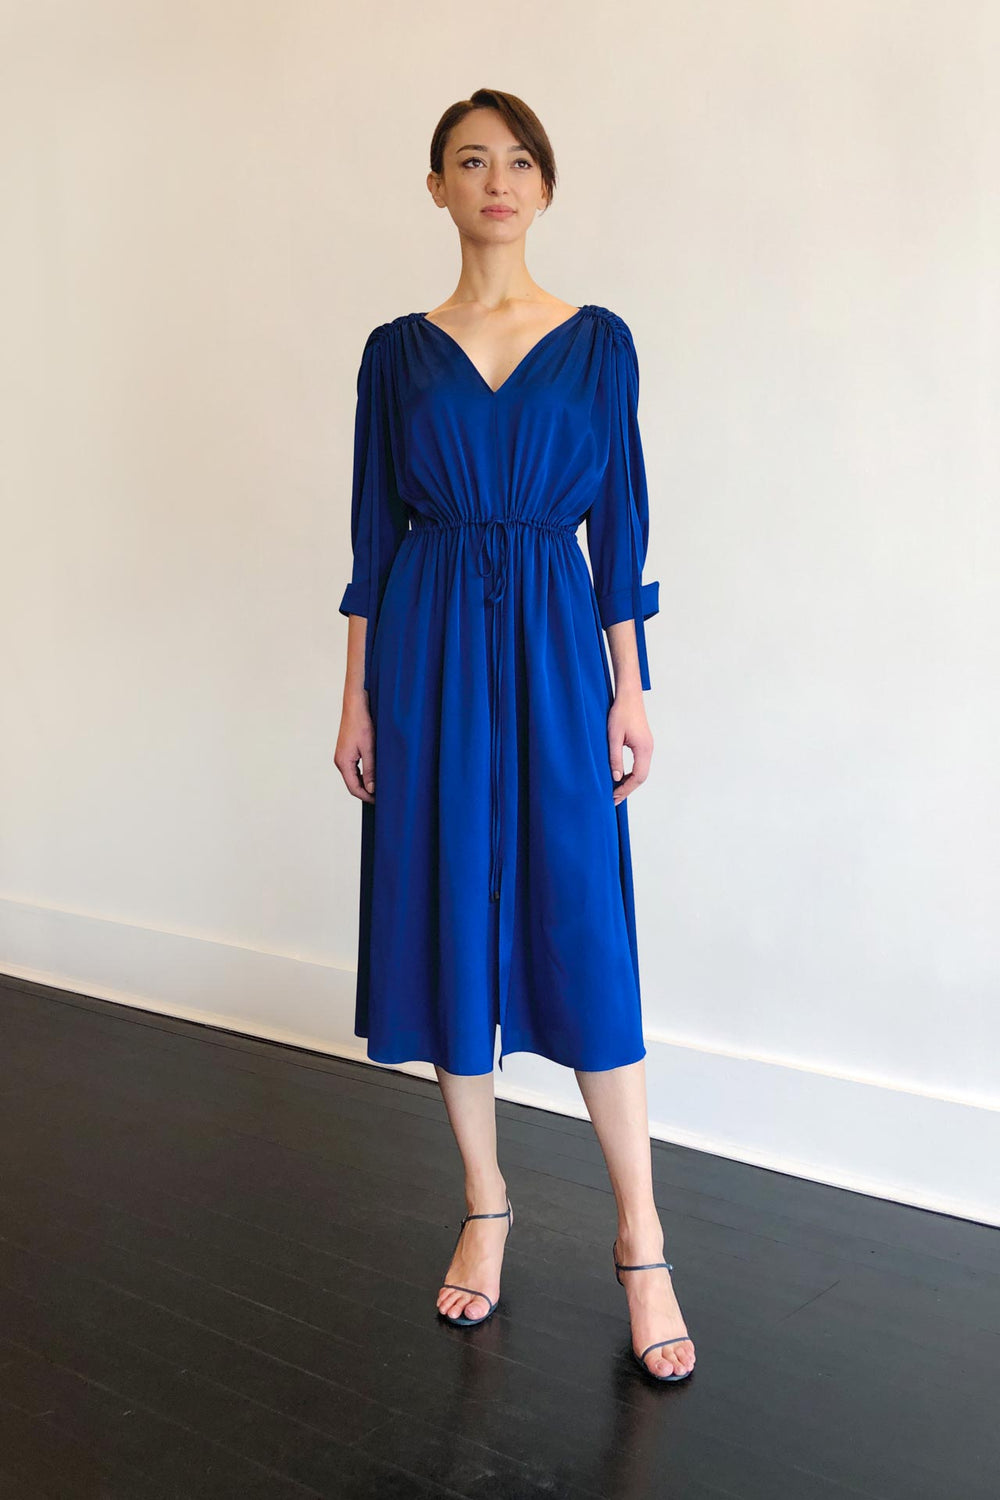 Fashion Designer CARL KAPP collection | Denise Dress Blue | Sydney Australia